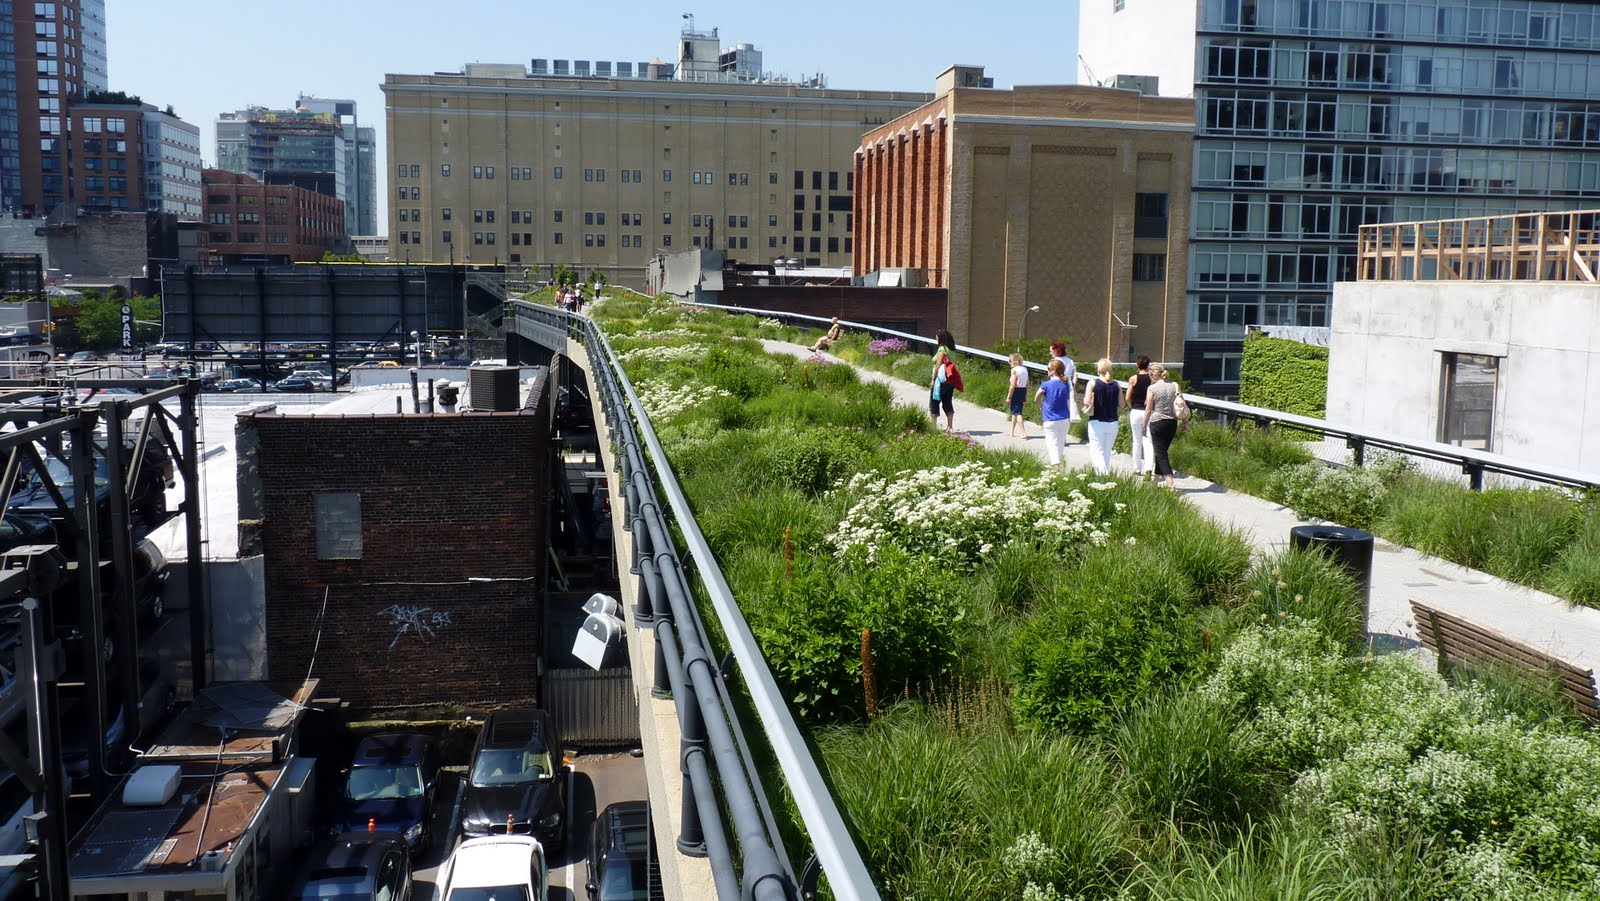 New_York_City_NYC_Sustainability_Living_Sustainable_High_Line_Conservation_Environment_1.jpg